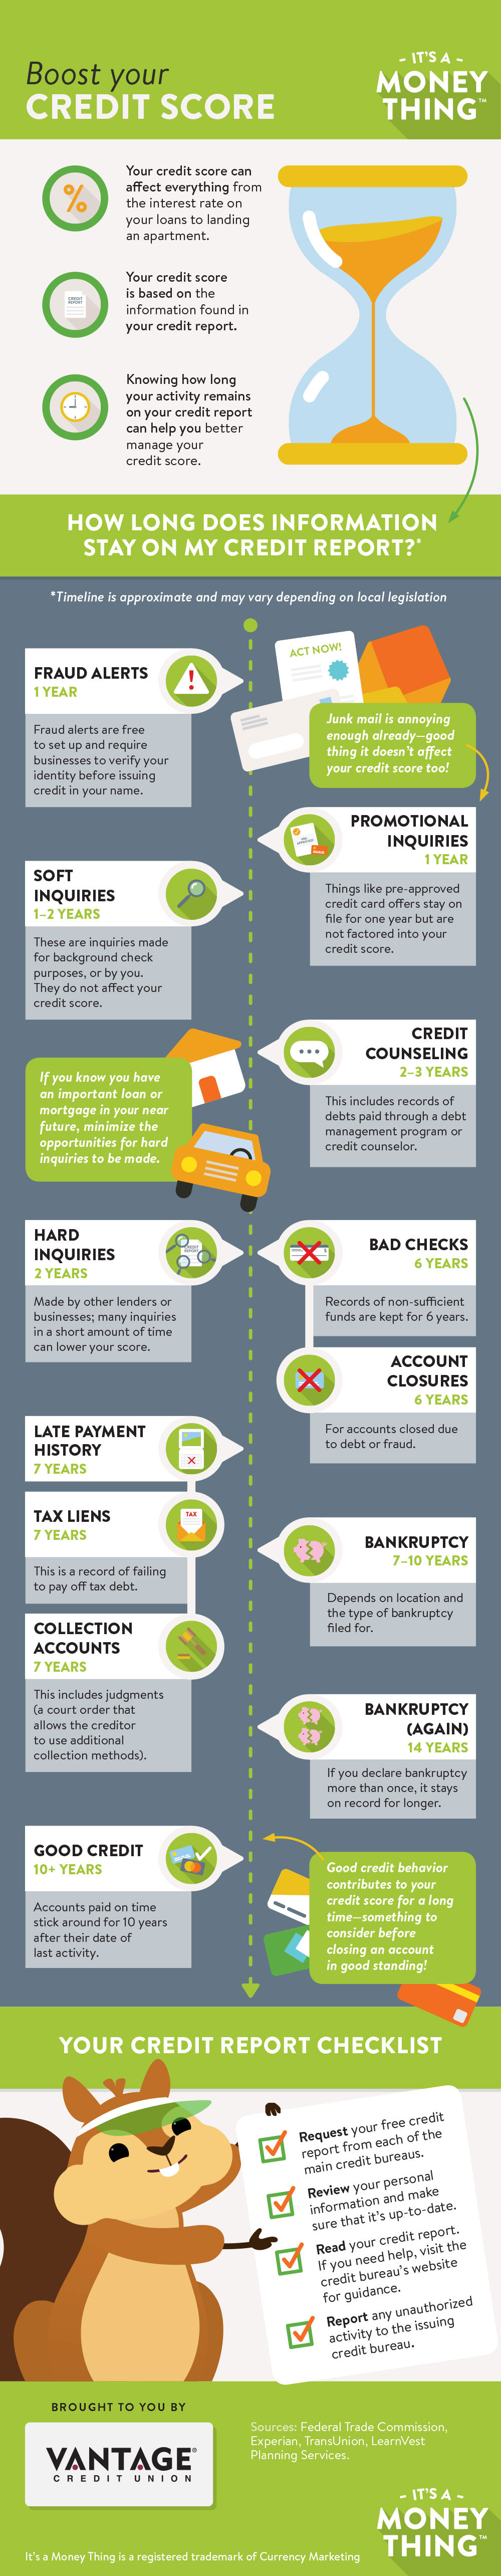 It's A Money Thing infographic providing the length of time activity remains on your credit report.